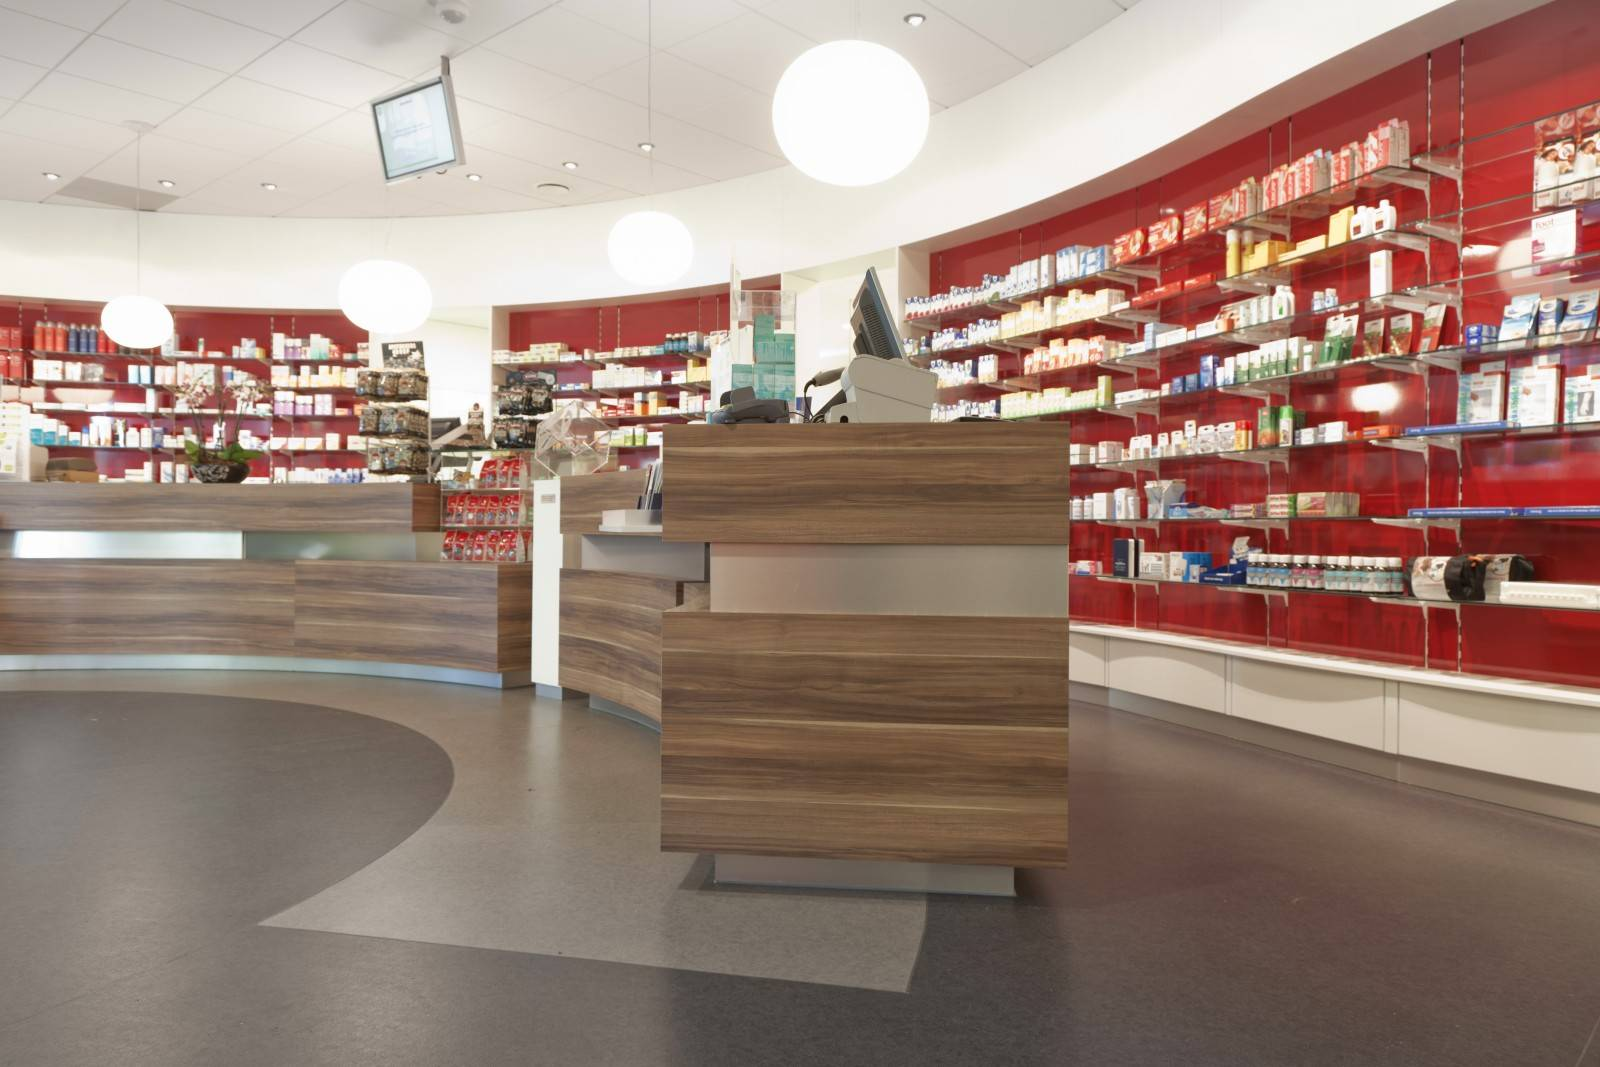 Secure your Drugstore and Pharmacy with EAS Antennas from Cross Point